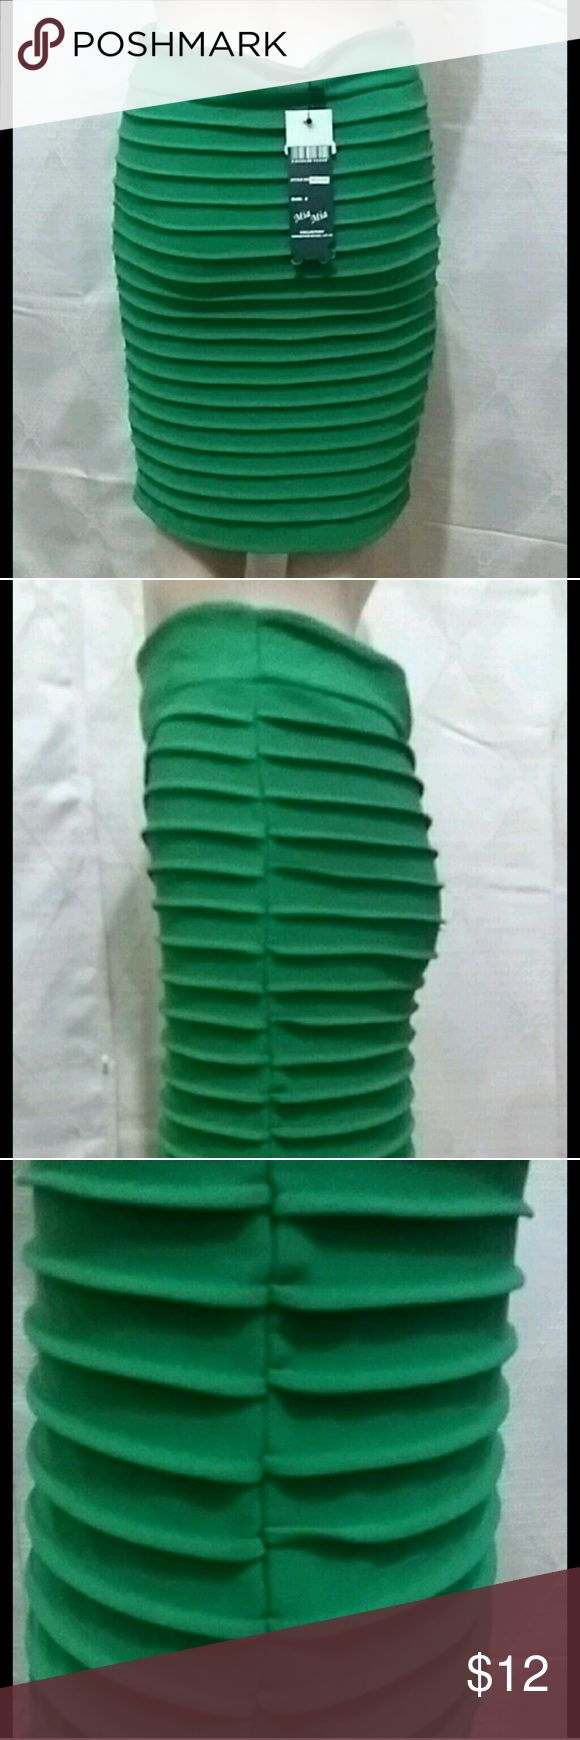 Green textured pencil skirt NWT Size small green pencil skirt with stretch and hidden zipper on the side. Too small I went up a size before I could wear half my closet. Skirts Pencil